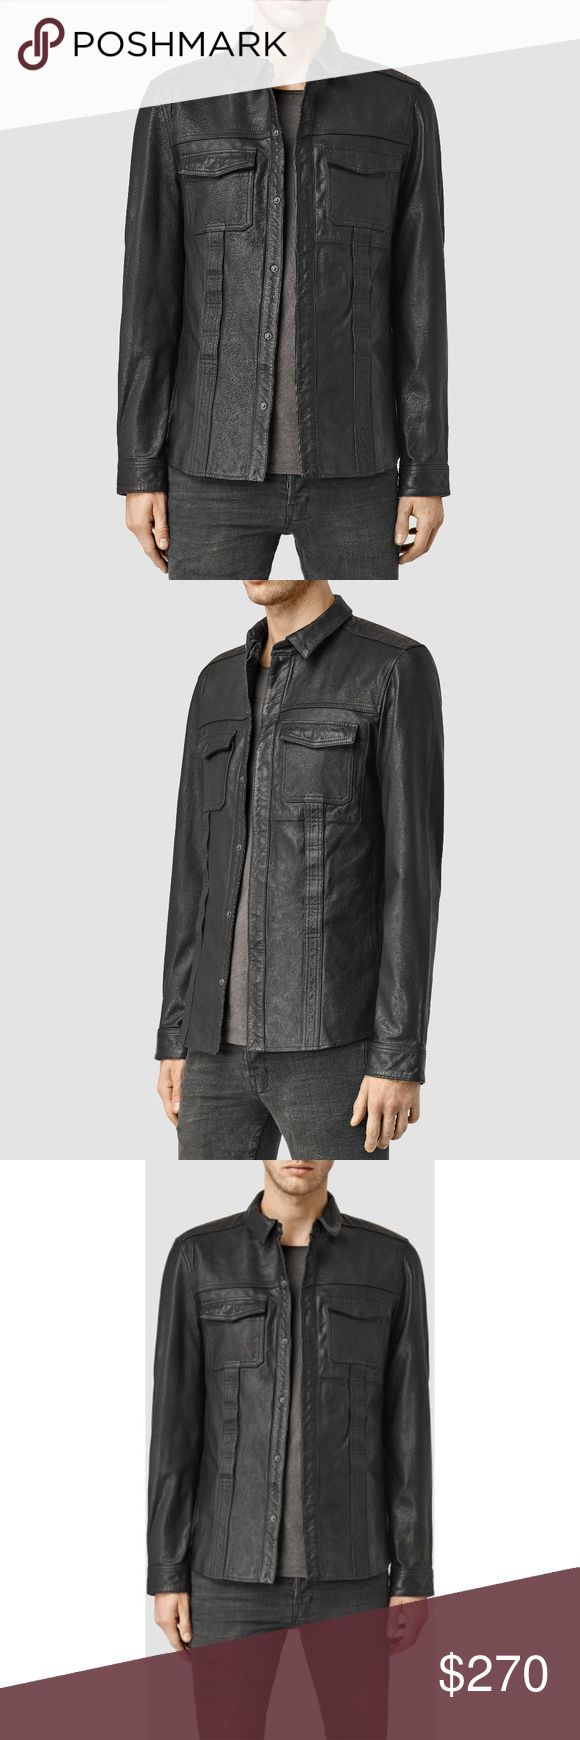 """AllSaints DANGAN LEATHER SHIRT JACKET COAT Small For Sale is a stunning All Saints Black """"Dangan"""" Leather Shirt / Jacket  Brand New with Tags  Get this seasons Jacket for a fraction of the price!  Sizes: Medium available, please select above  Color: Black  Model: DANGAN LEATHER SHIRT All Saints Jackets & Coats"""